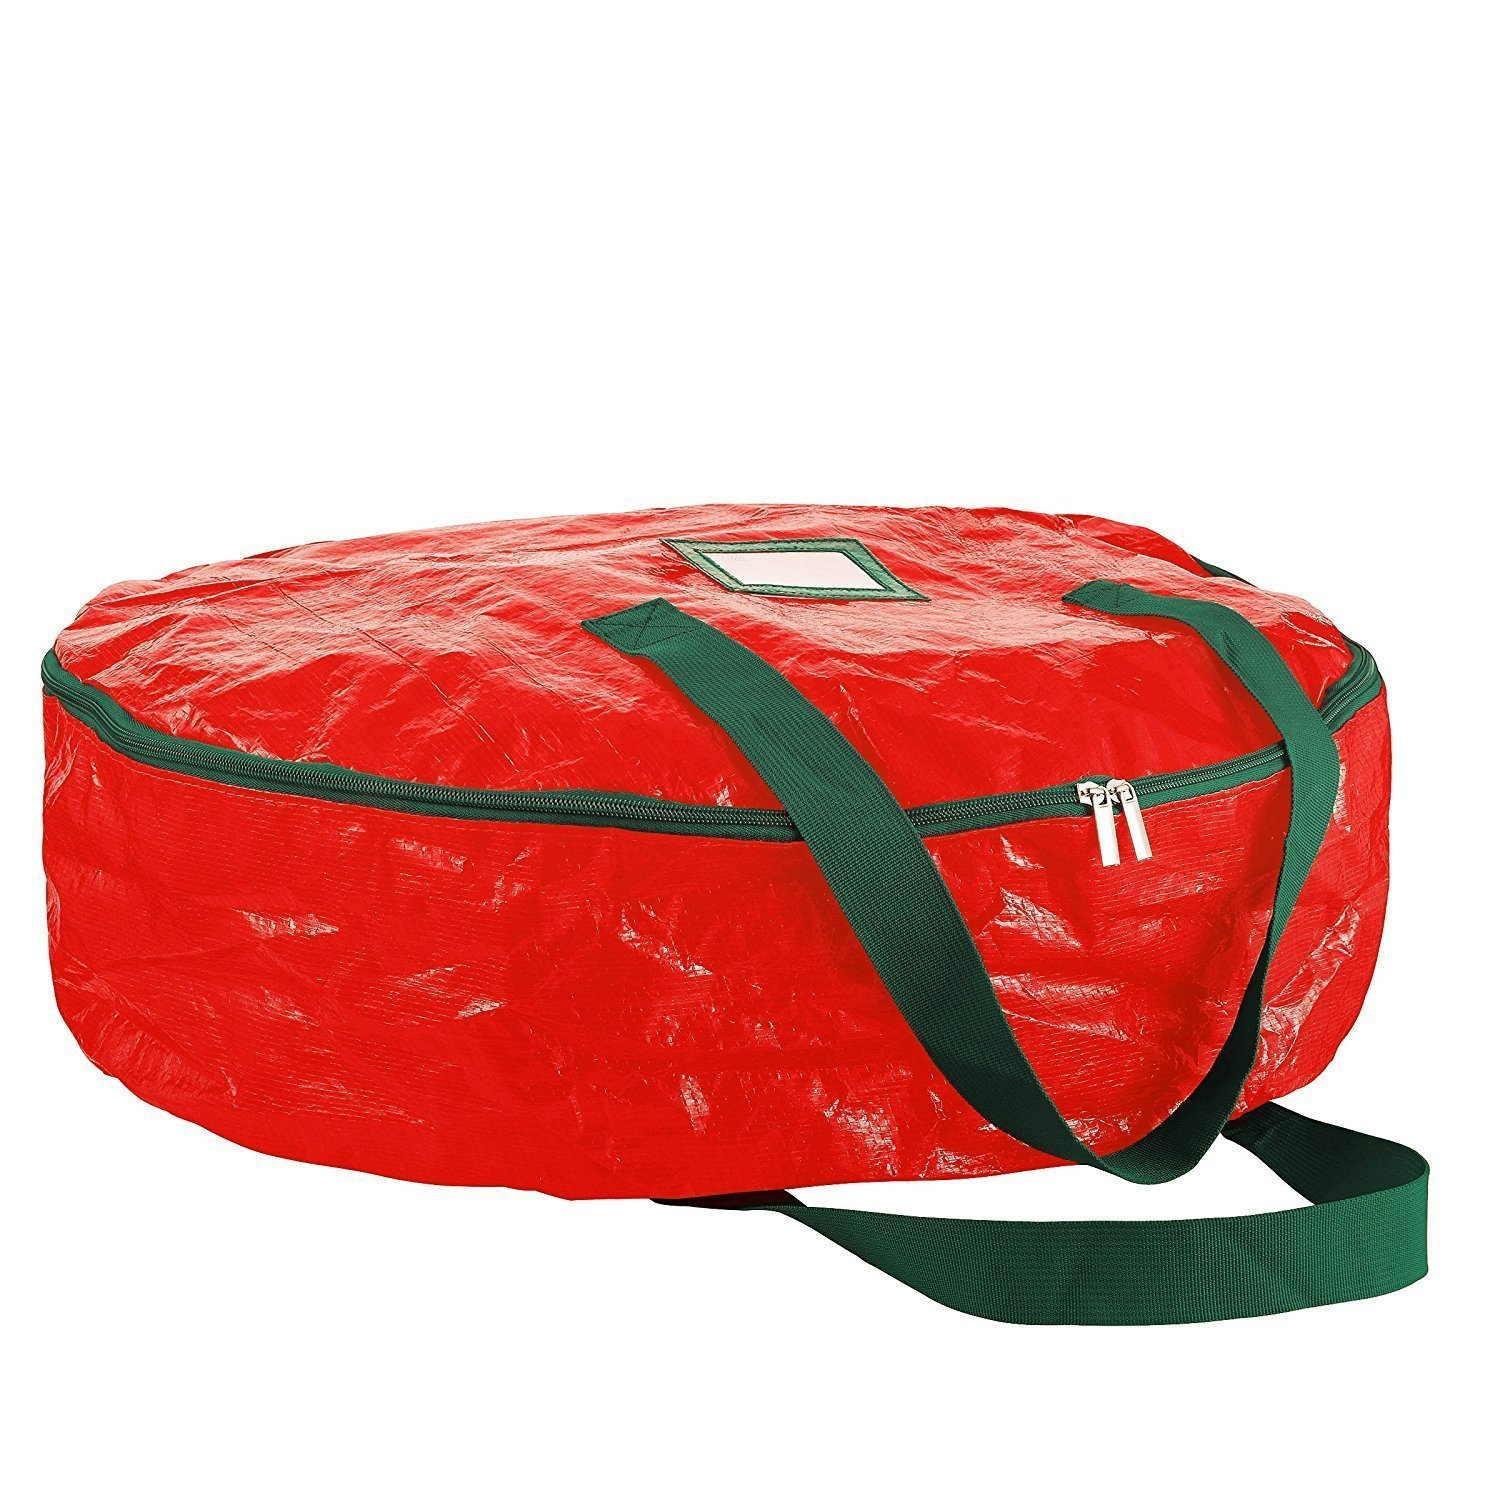 "Christmas Wreath Storage Bag 36"" - Tear Resistant Material Storage Bag for Wreath Storage With Sleek Zipper, Featuring Transparent Card Slot 36""L 36""W 8""H (Red)"